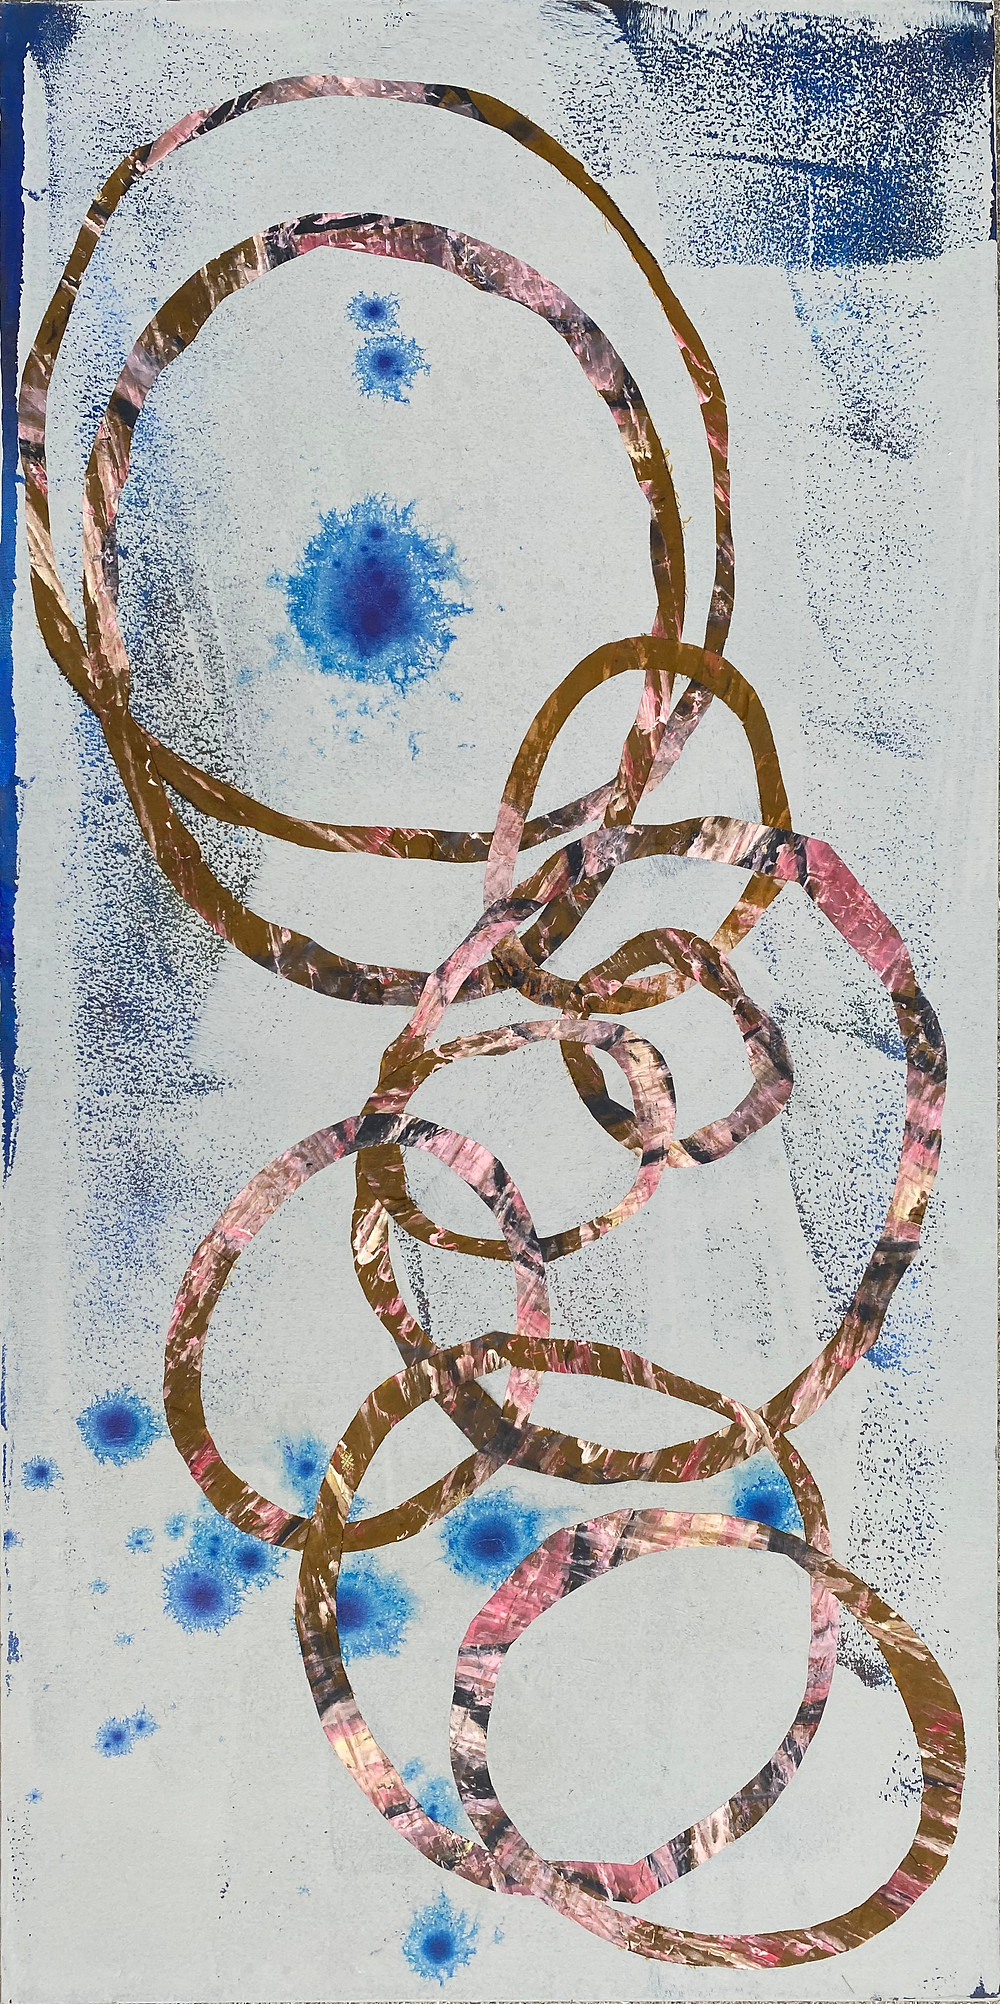 circles_3_24x48in_acrylic and fabric on canvas_ritagpatel